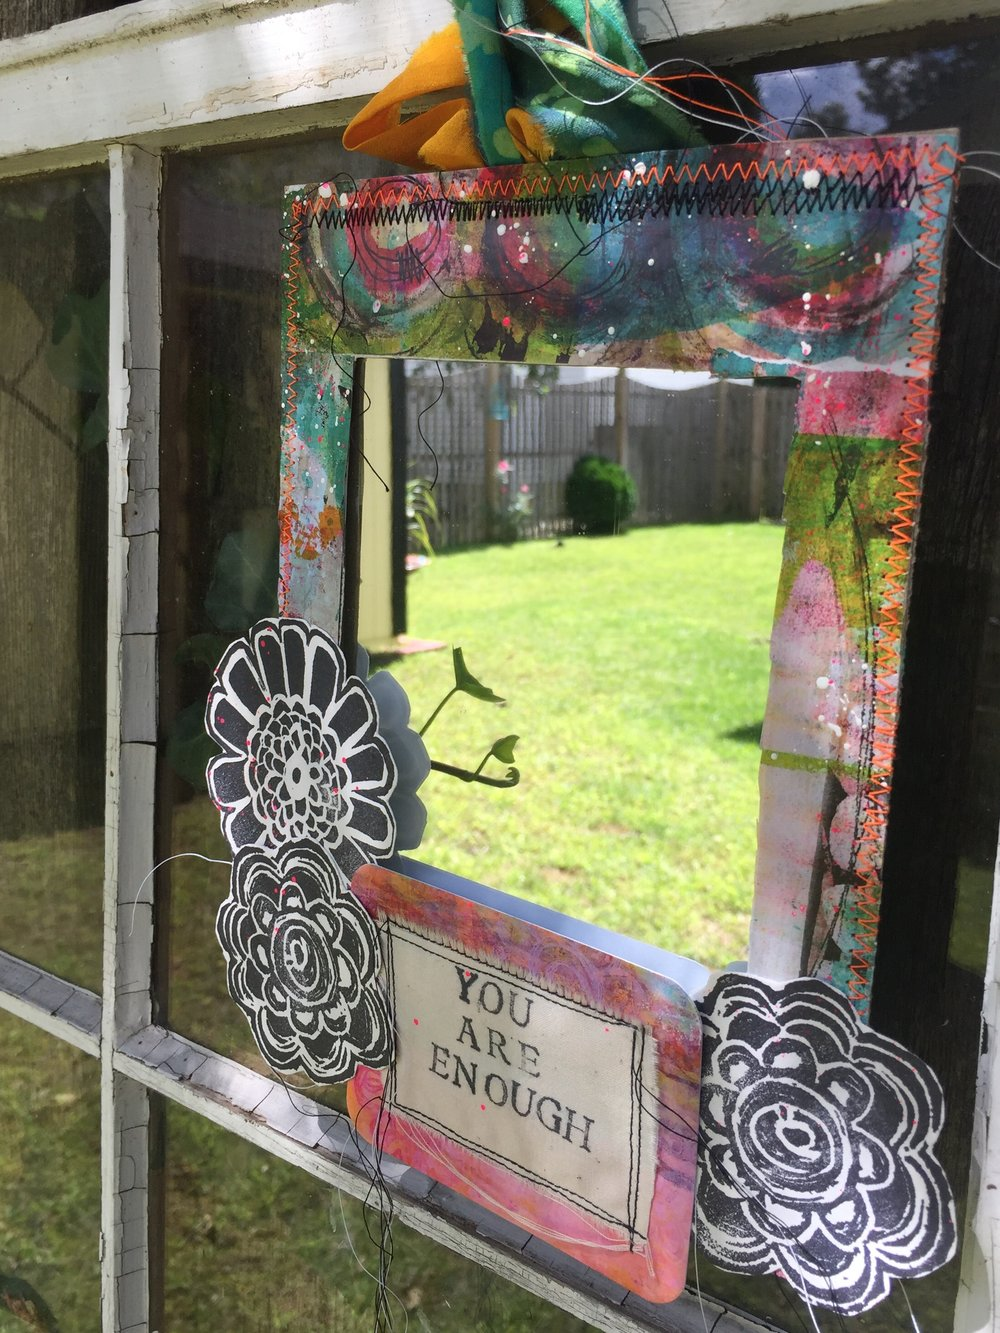 Design Team member Krisit Nazzaro is sharing with us how she has made this beautful and empowering positive affirmations mirror for her latest project. Create your own powerful piece for yourself or someone special in your life. She uses stamps from Paperbag Studios and Art Pops™ to create this gorgeous piece of Art! @robenmarie @krisitmazzaro #robenmarie #robenmariedesignteam #paperbagstudios #artpops #mixedmedia #diy